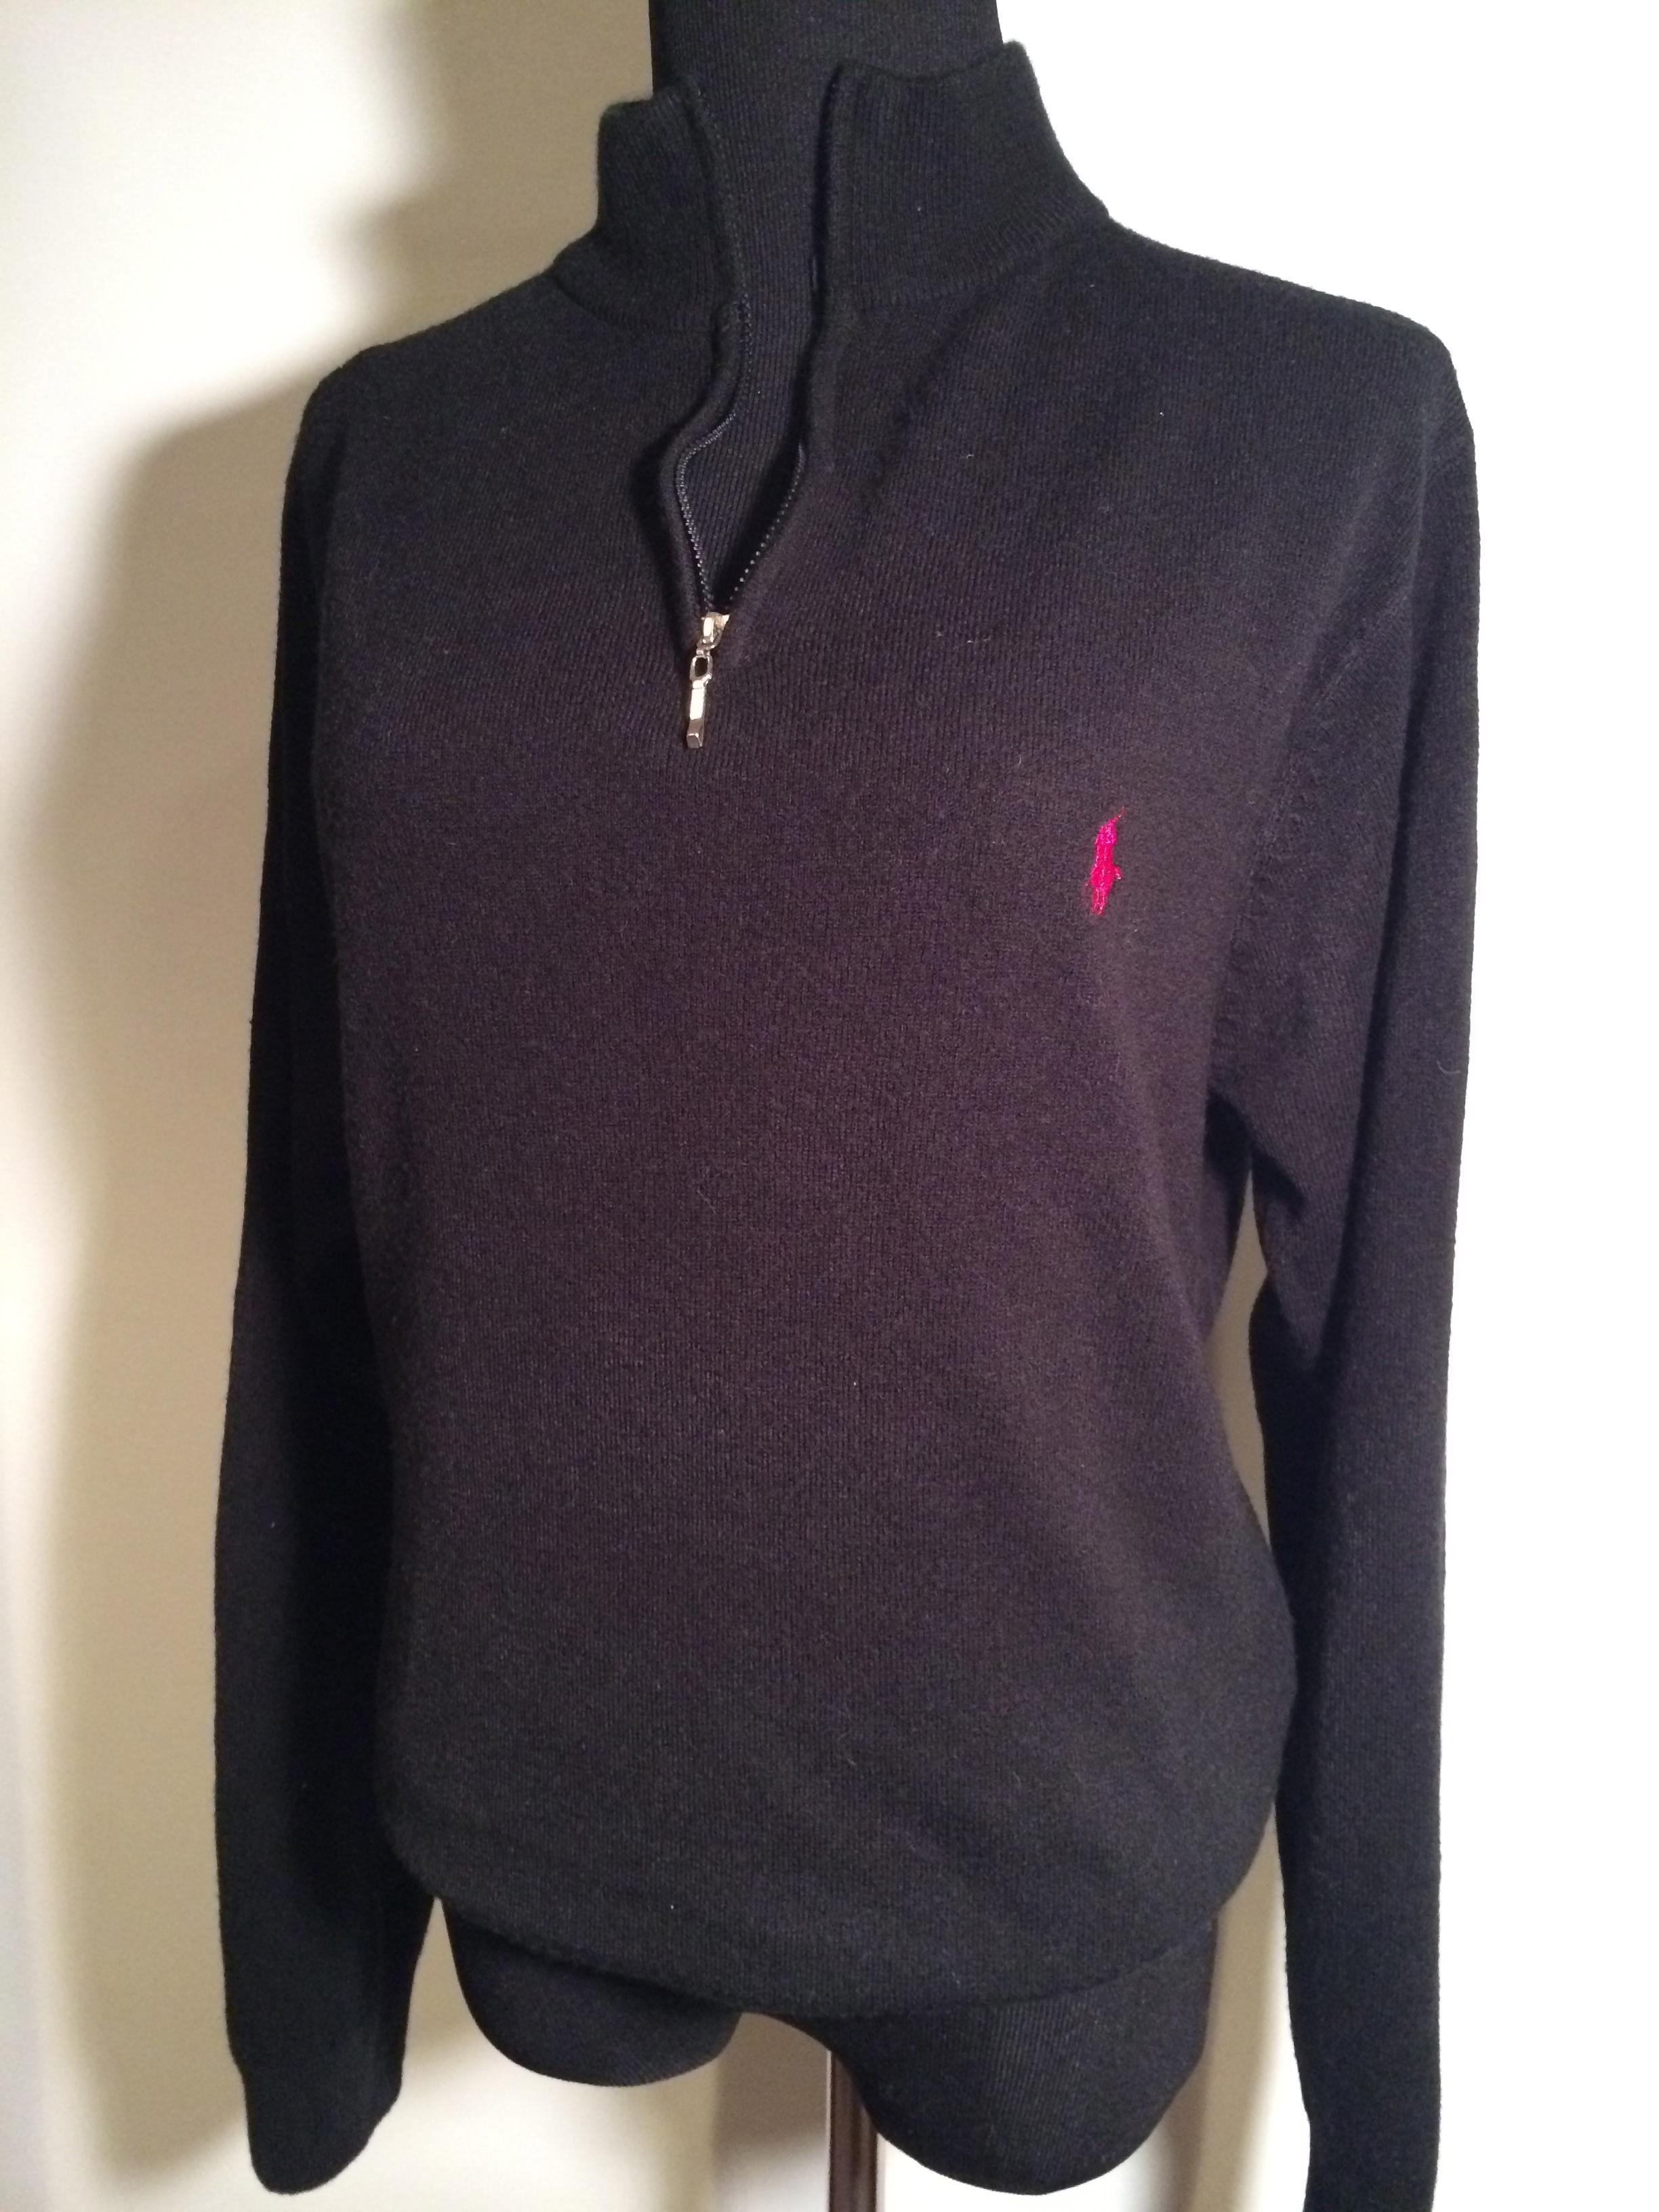 Polo Ralph Lauren Cashmere Sweater. 1234567